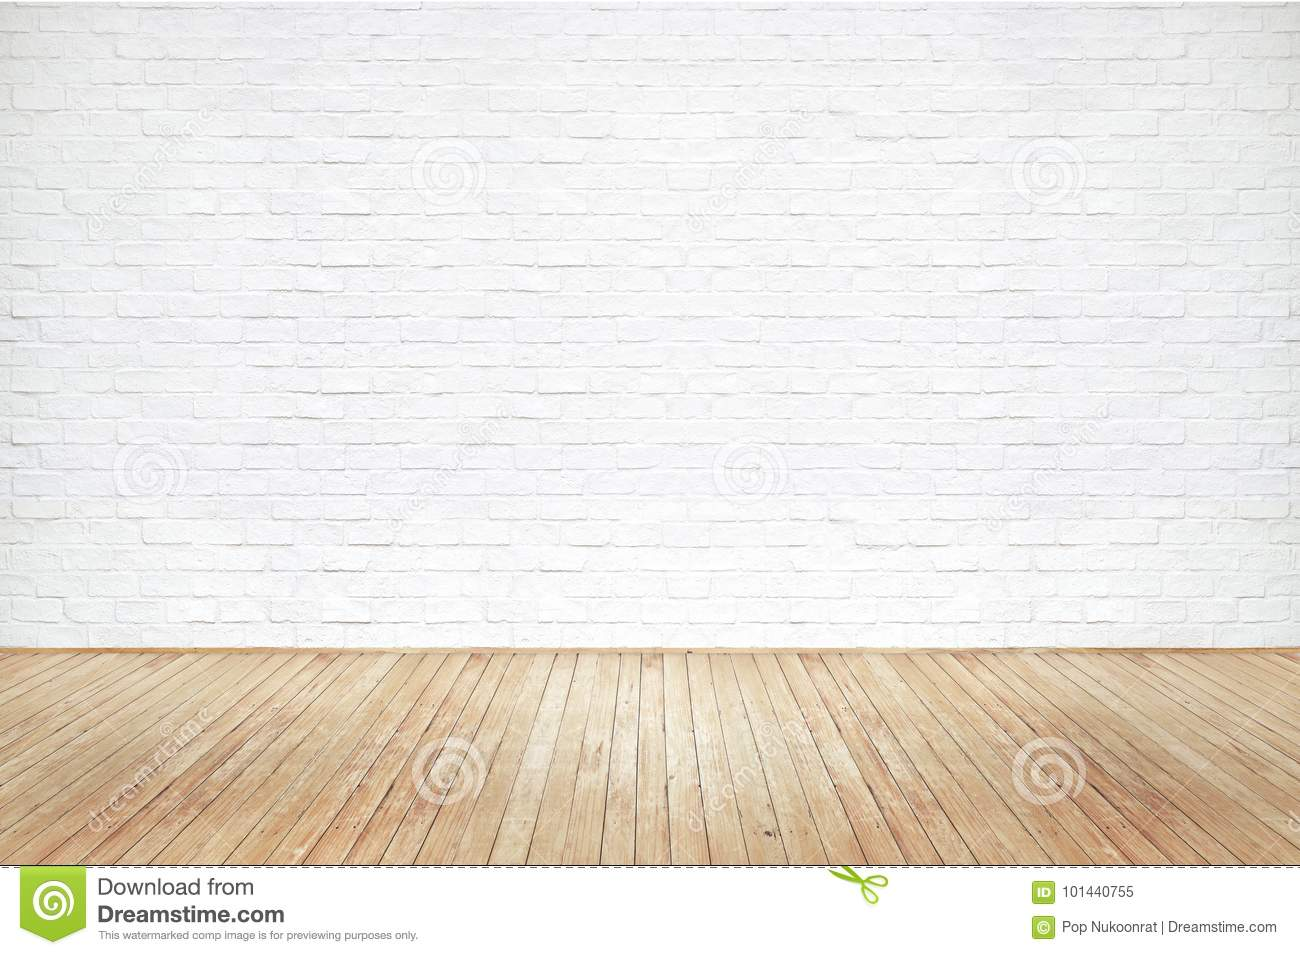 Vintage Old Brown Wooden Floor Texture And White Brick Wall Stock Image Image Of Panel Dust 101440755